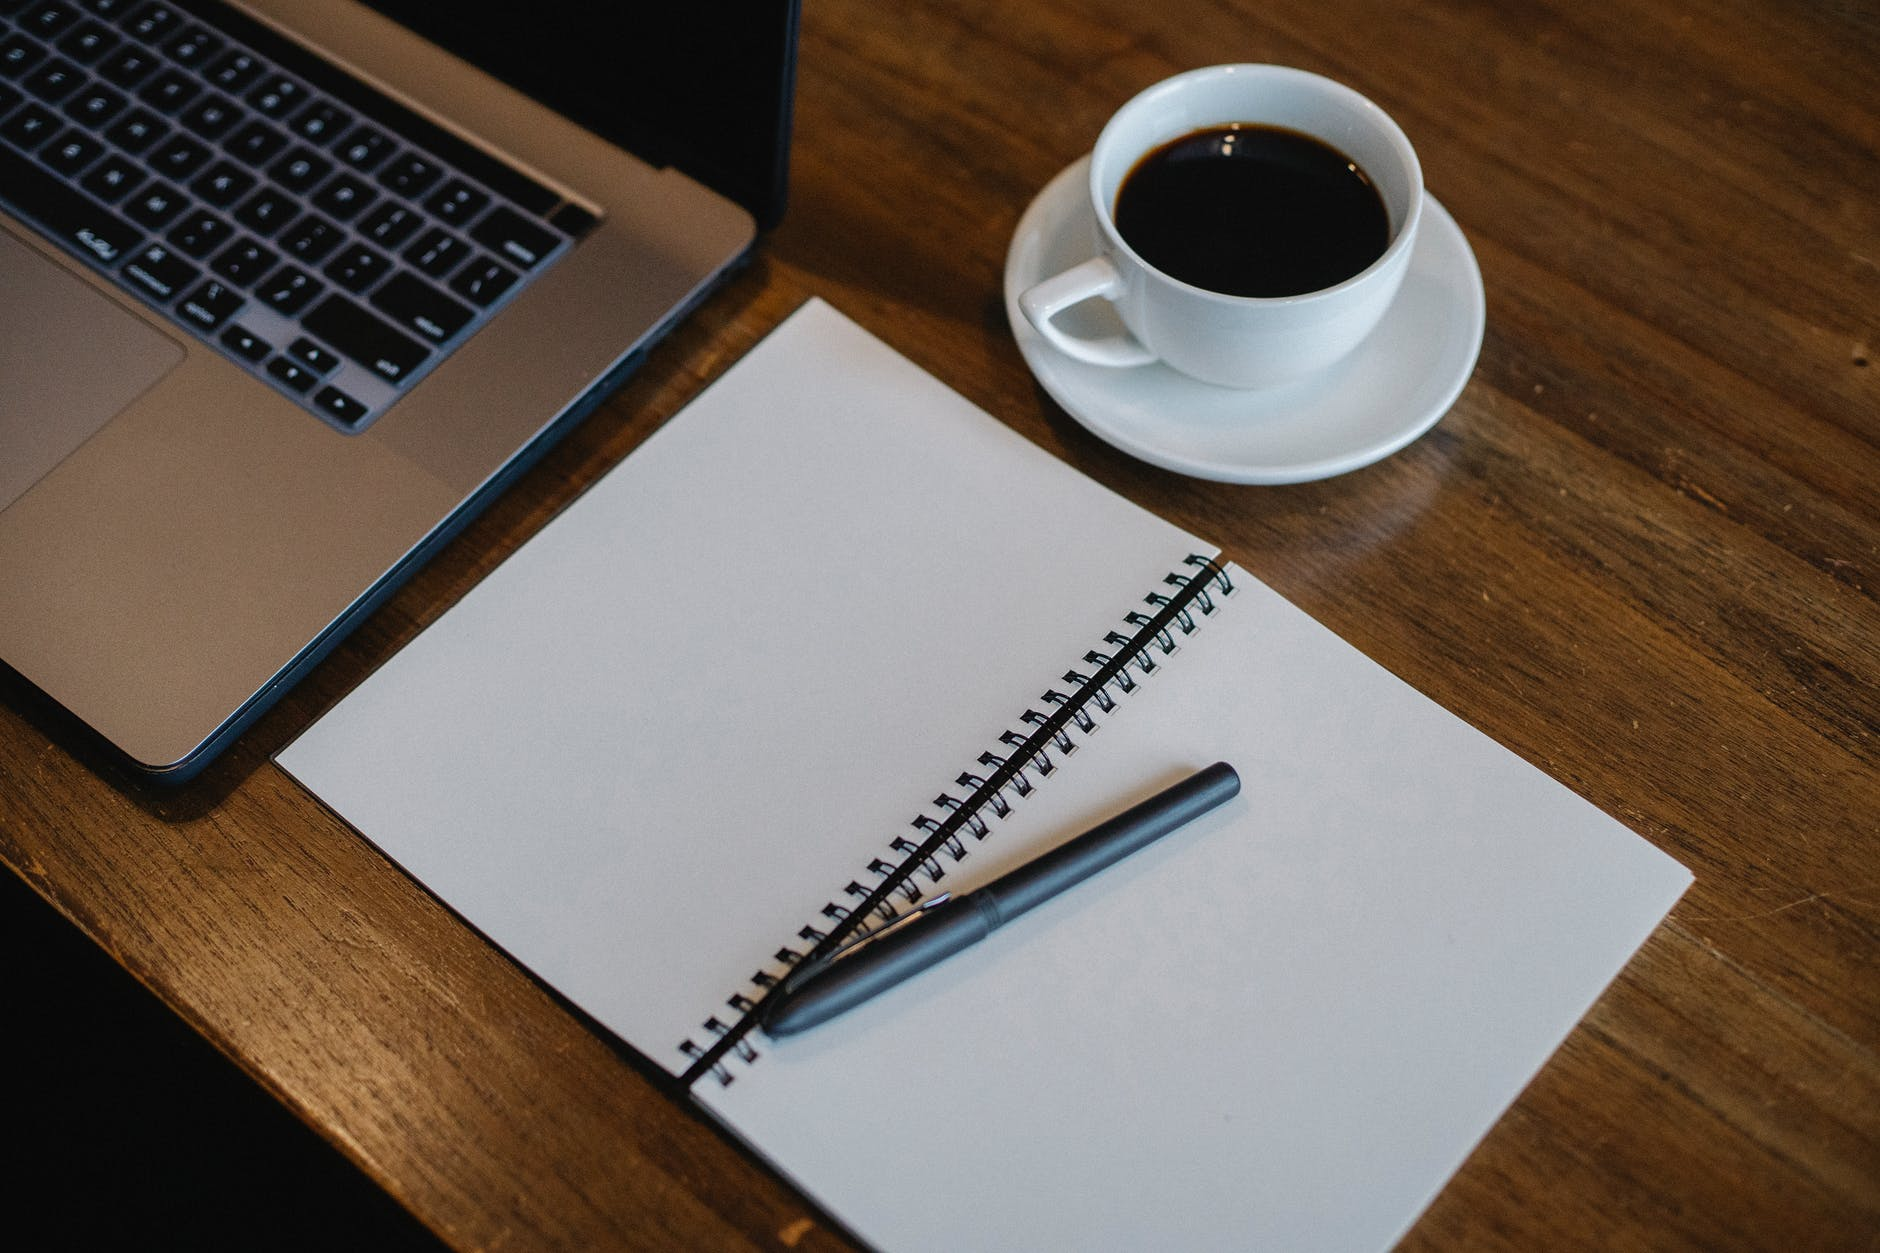 laptop and notepad near cup of coffee